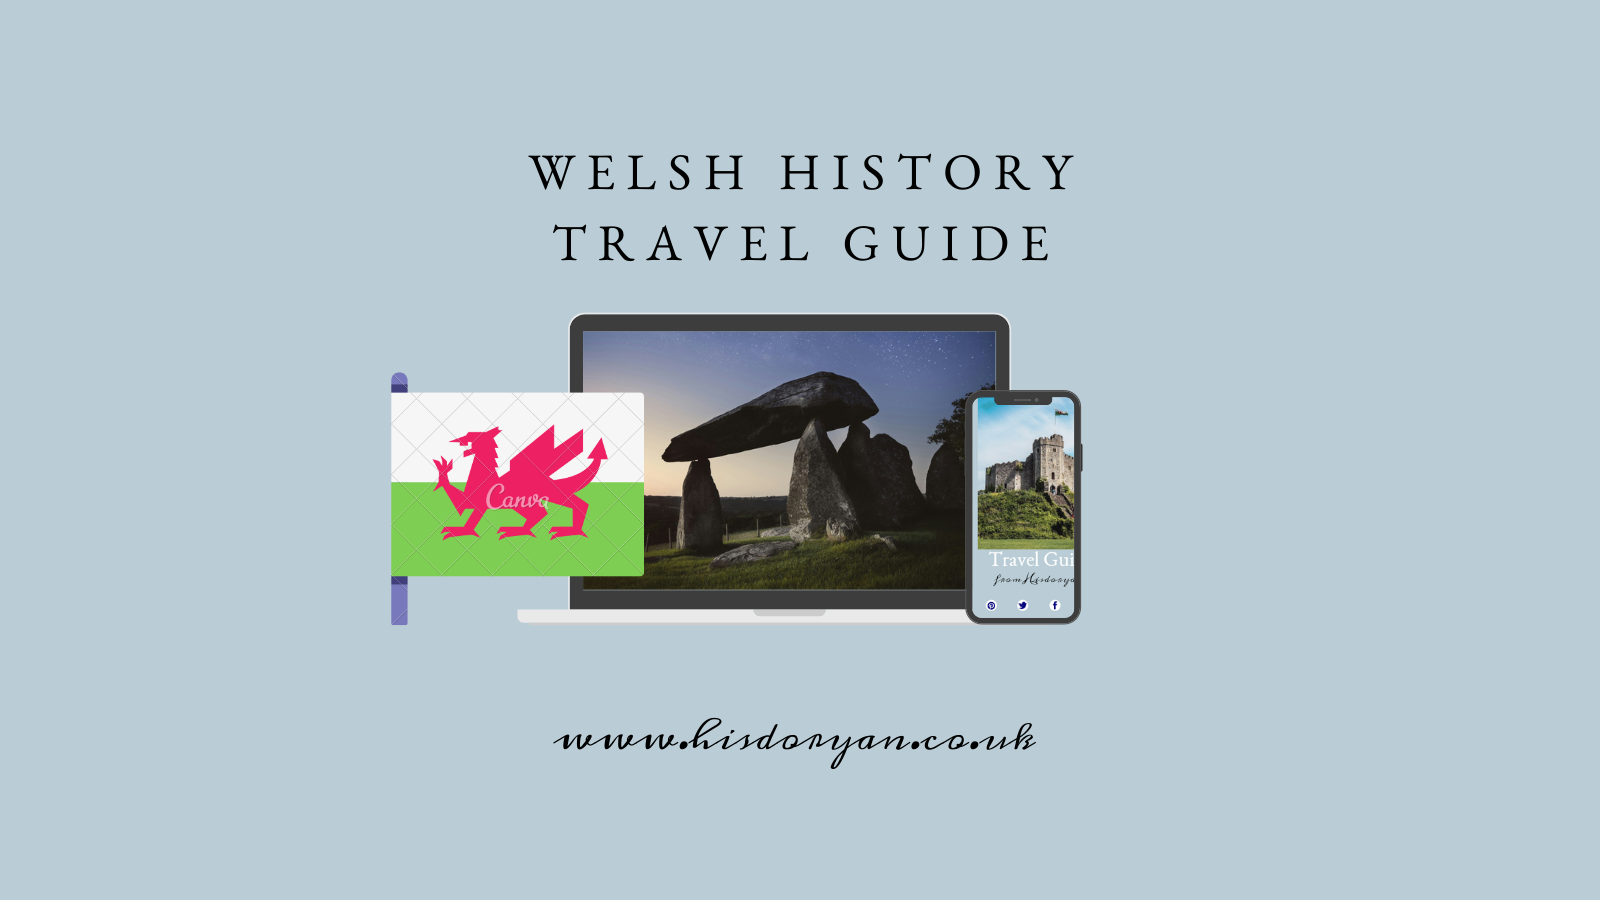 Welsh History Travel Guide